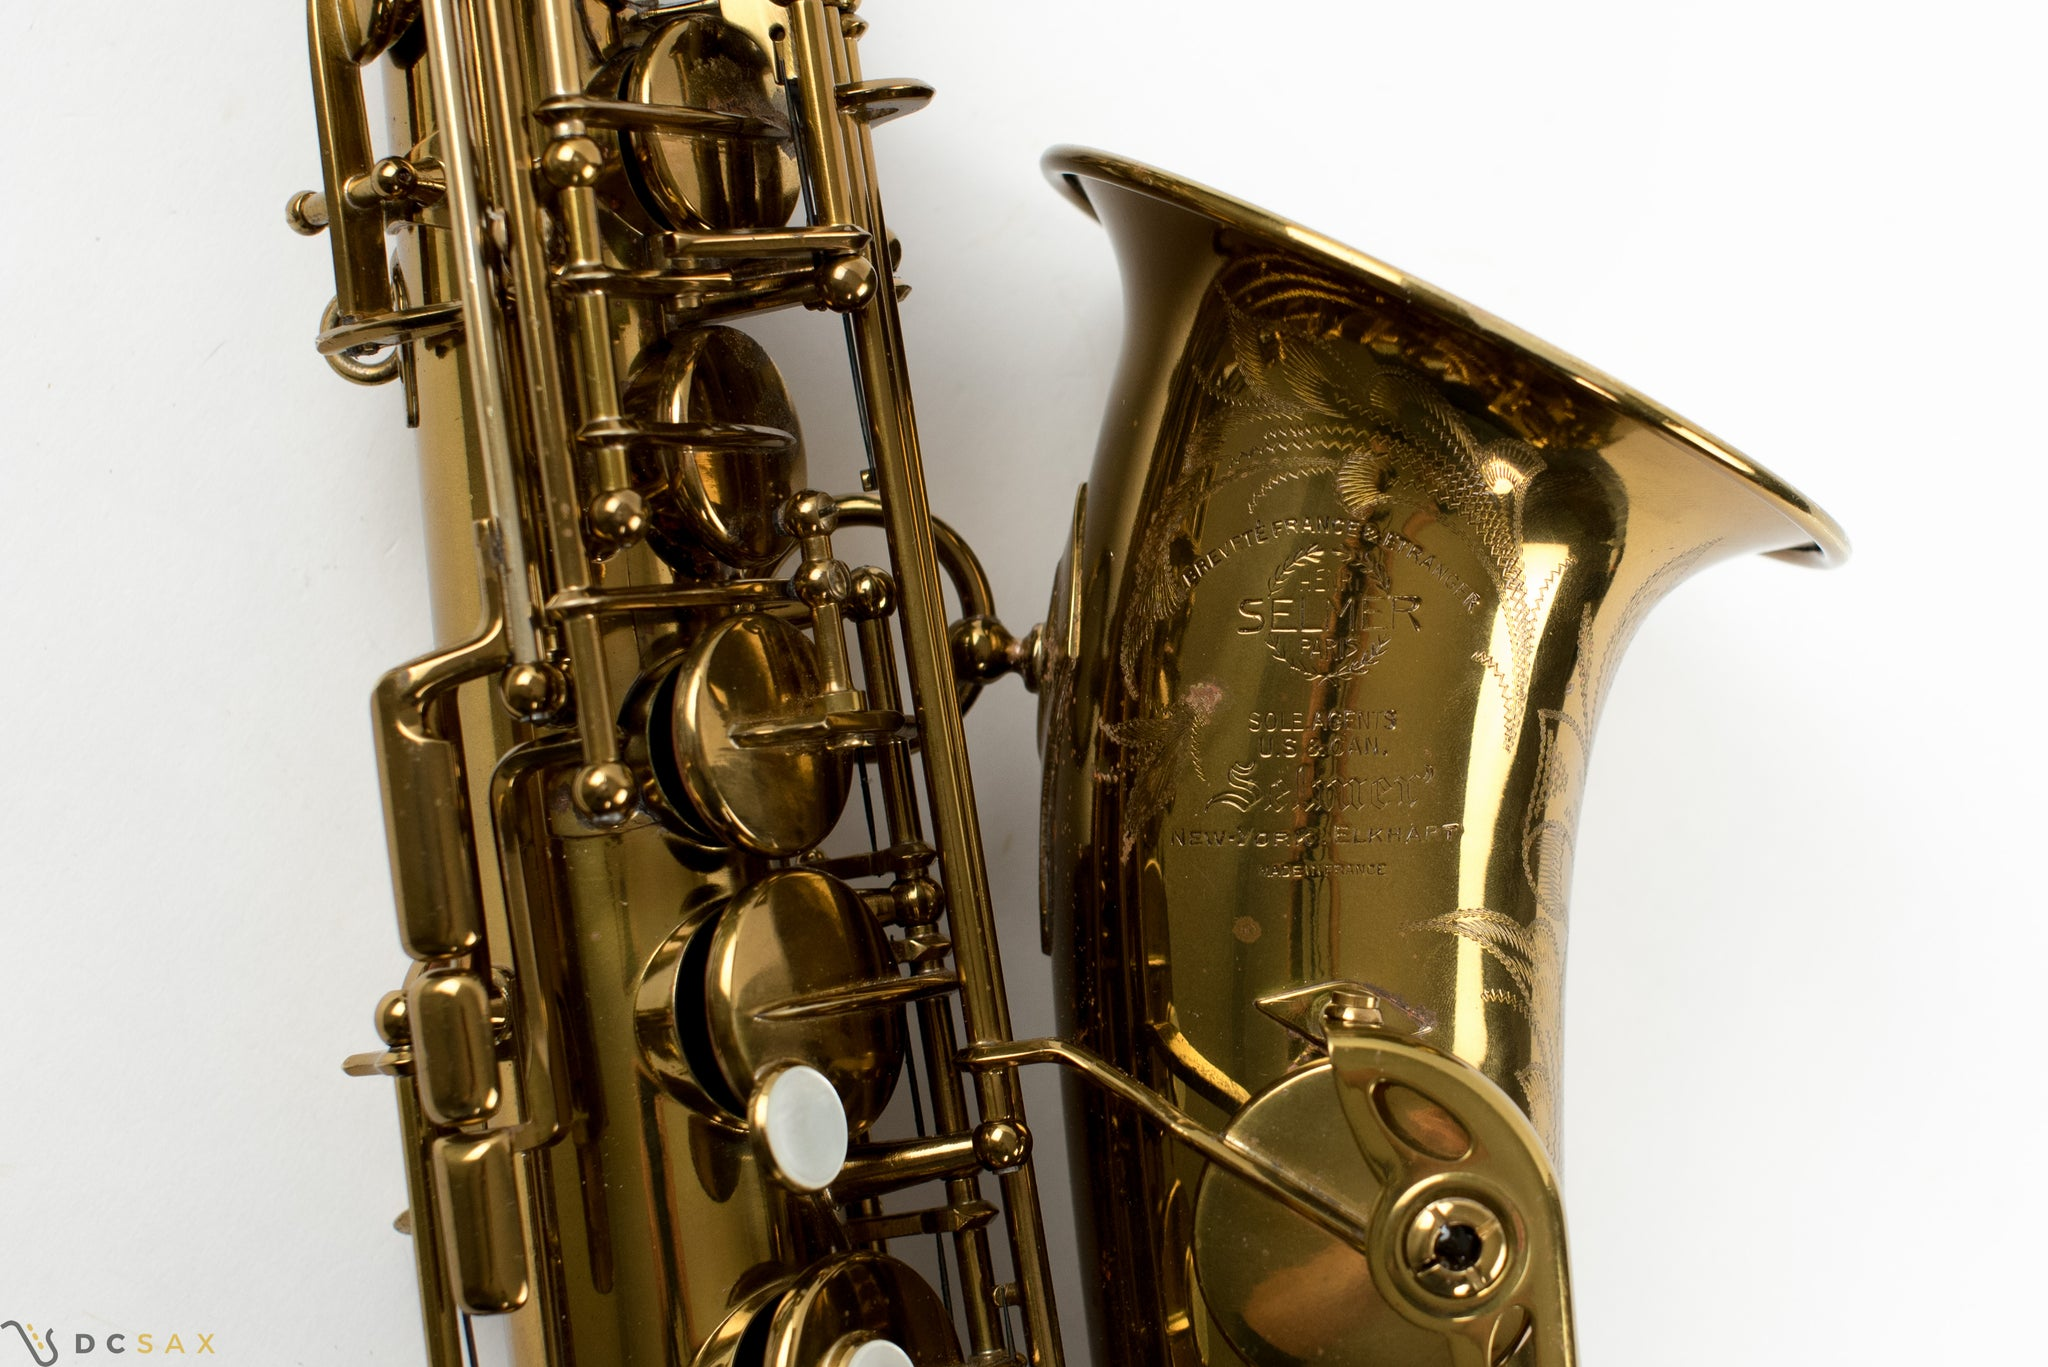 53,xxx Selmer Super Balanced Action Alto Saxophone, 98% Original Lacquer, Fresh Overhaul